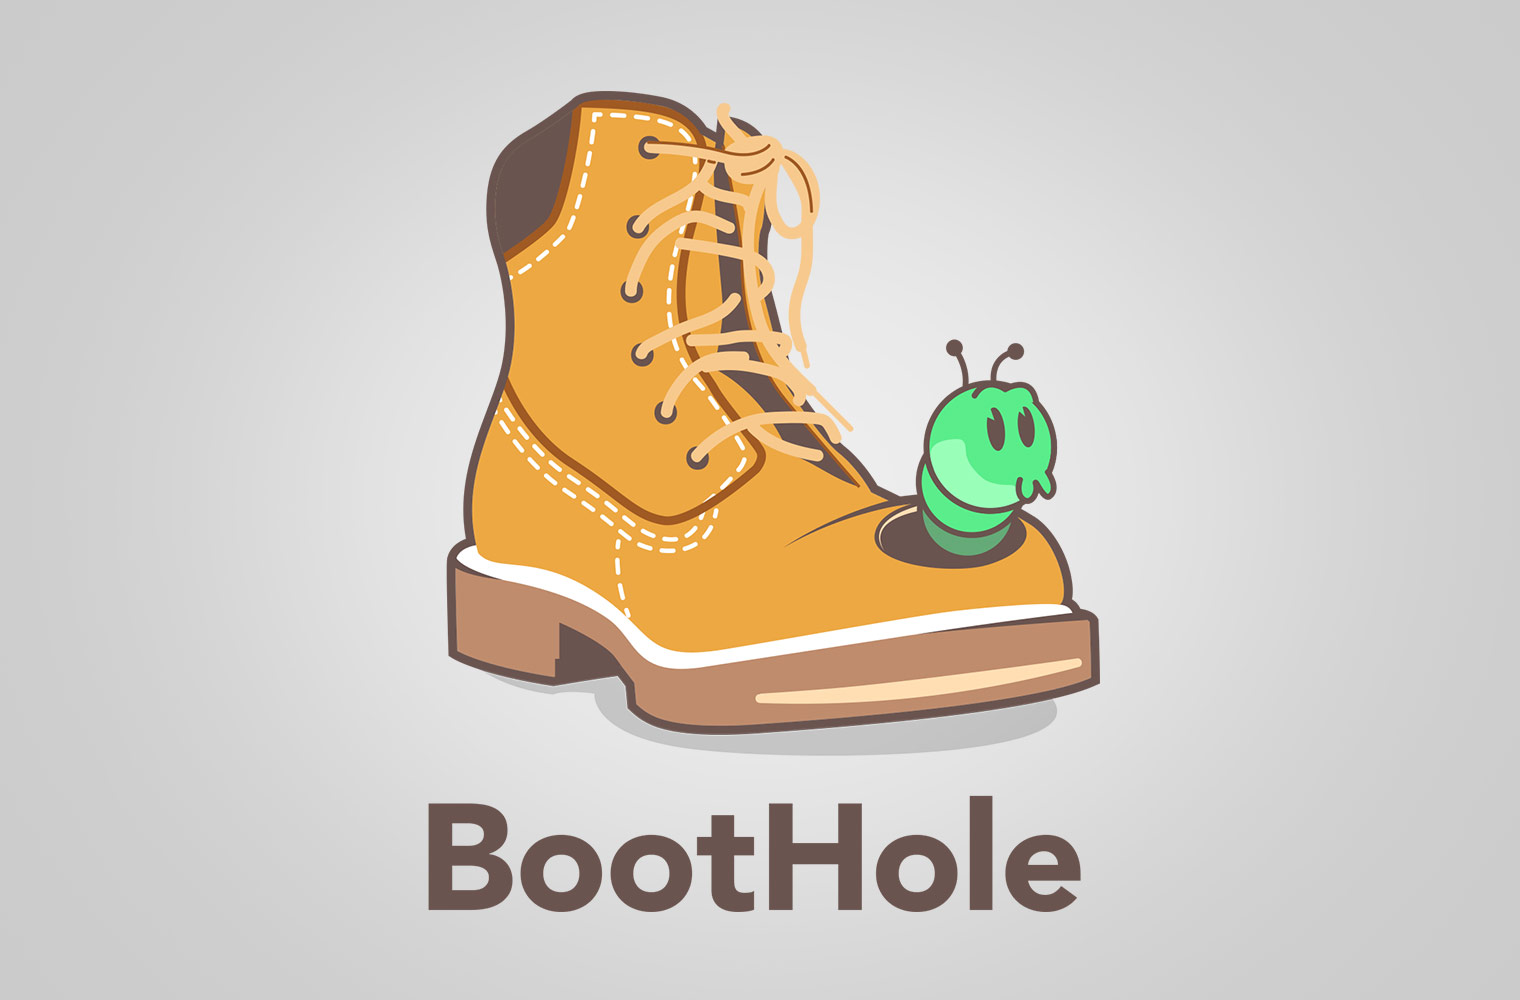 Grub in a hole in a boot